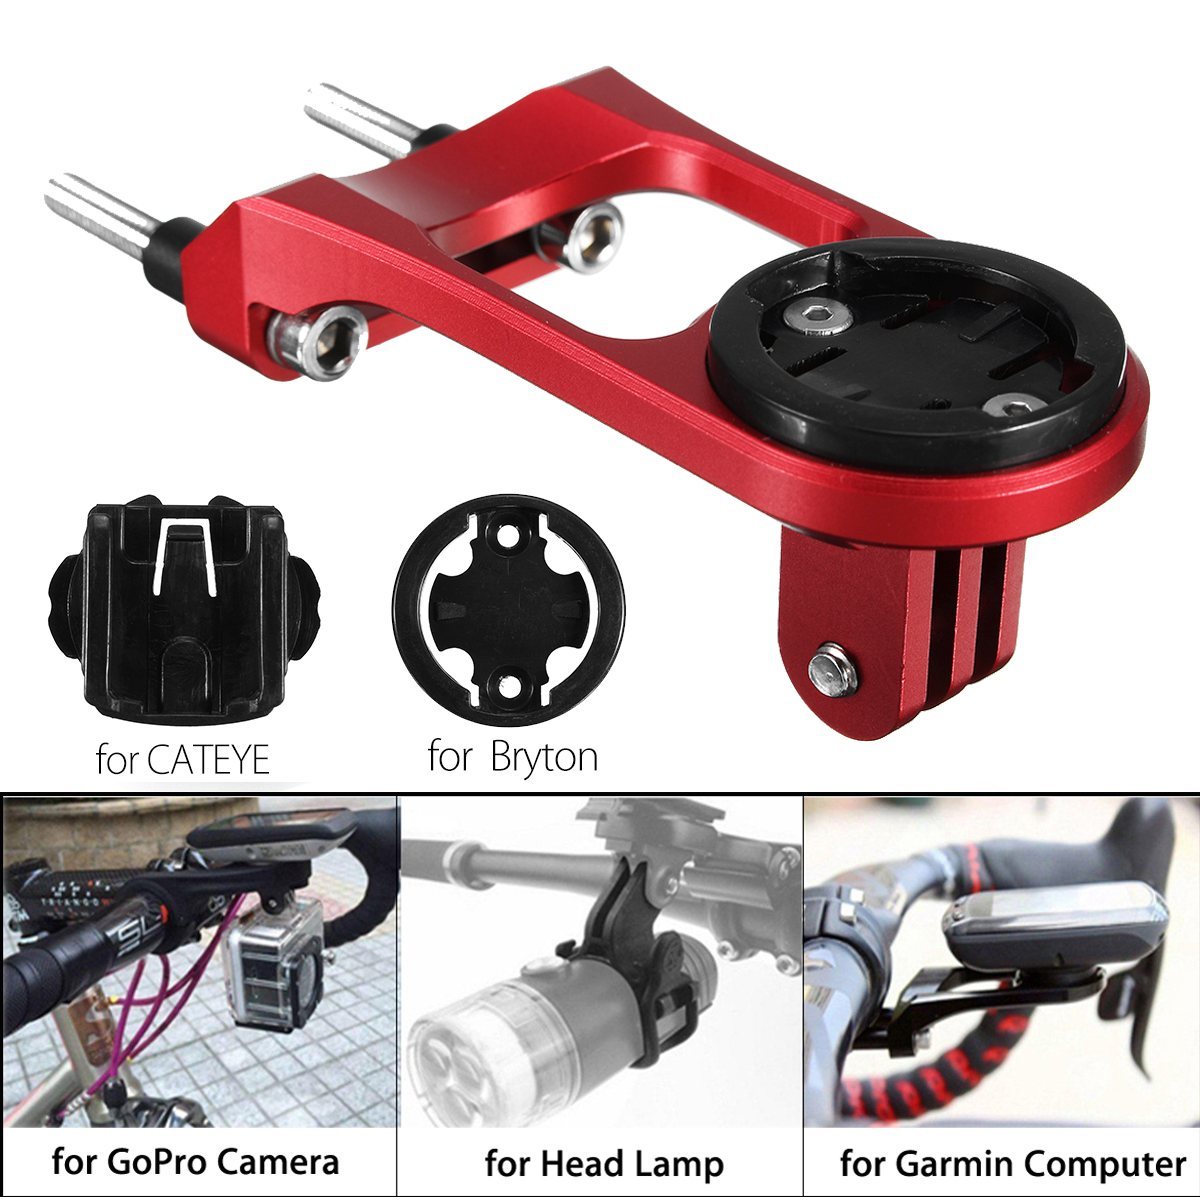 New Arrival Bike Cycling <font><b>Computer</b></font> Stem Extension Mount Holder for GARMIN Edge GPS for GoPro for Bryton Outdoor Ridding Accessory